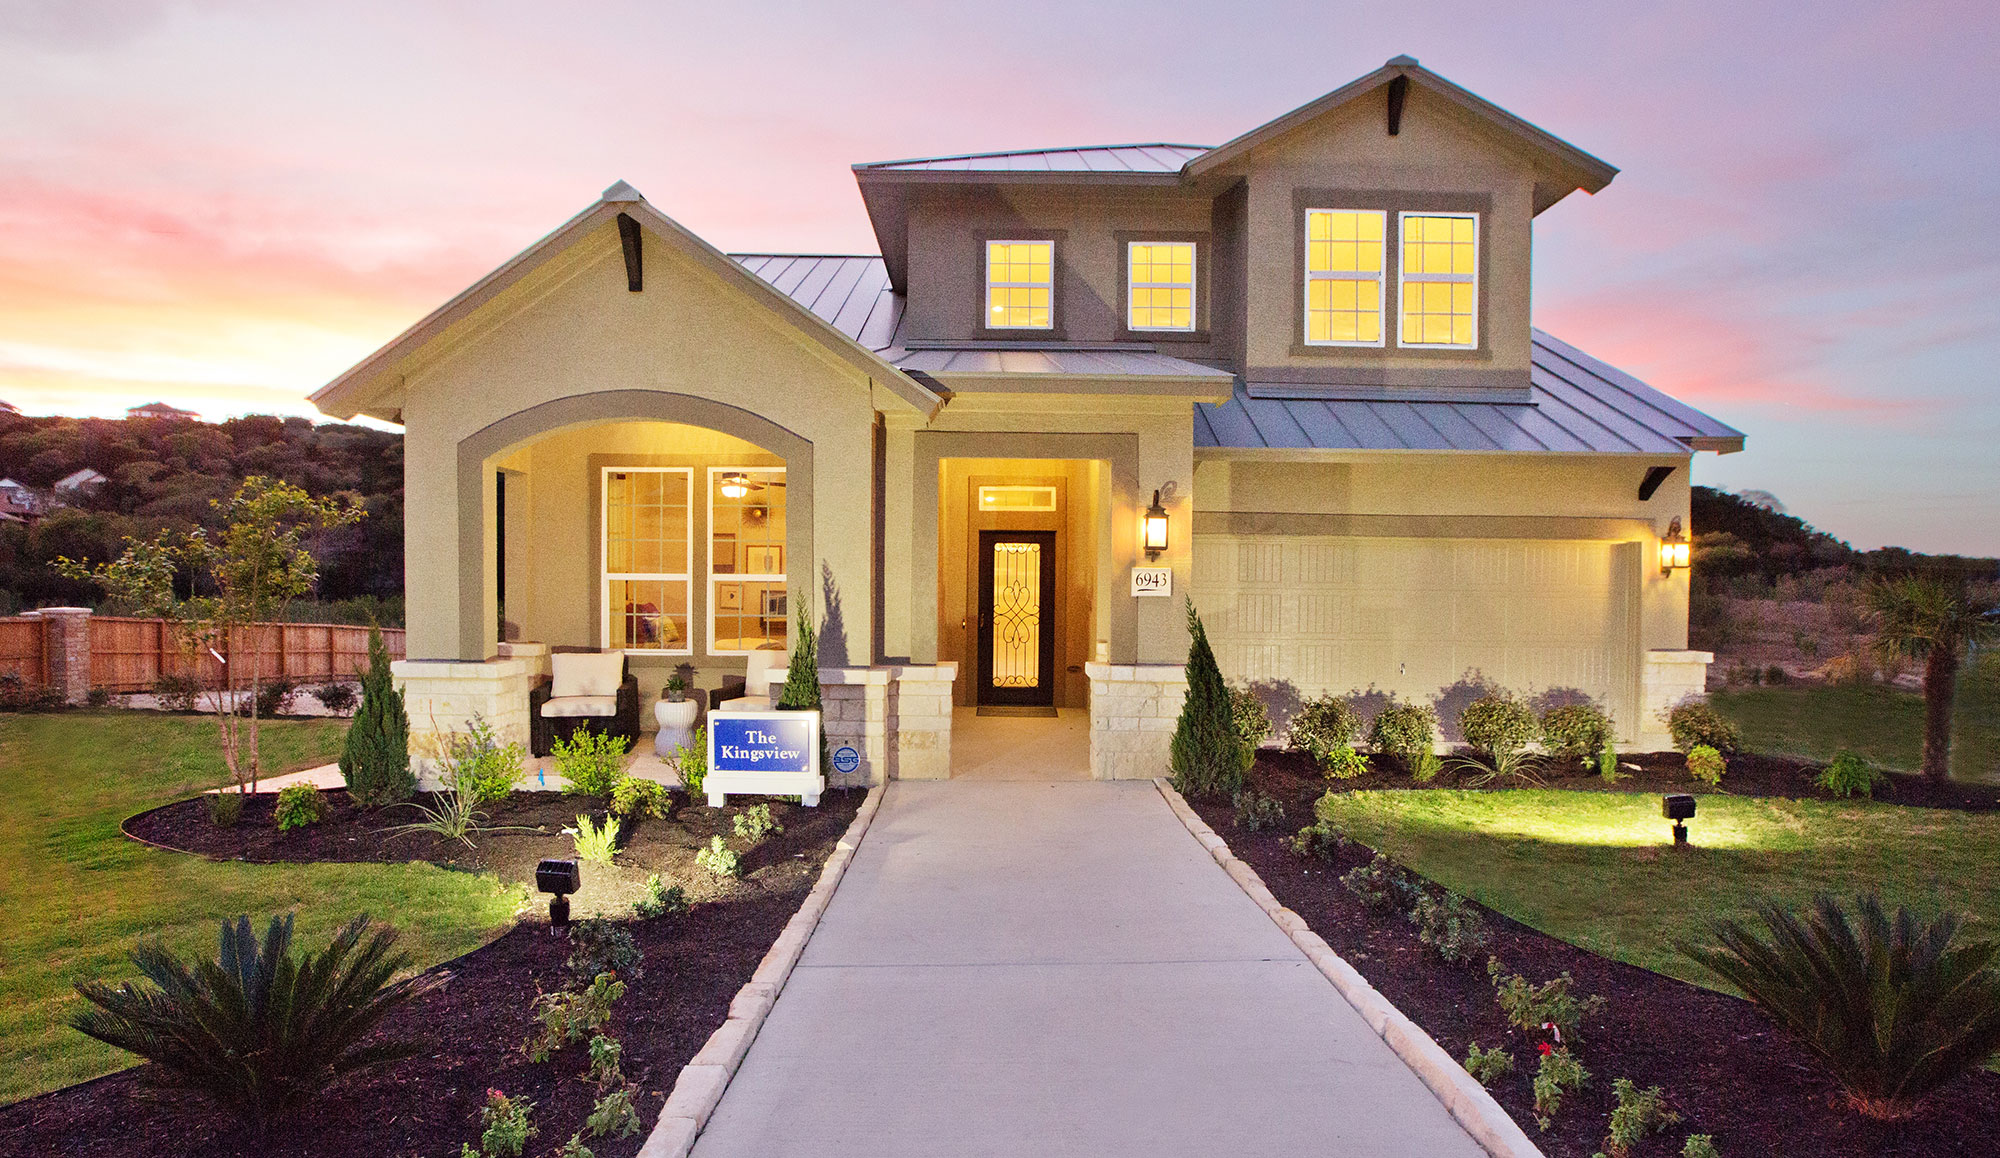 The Villas at Roanoke San Antonio TX Home Builder, New Homes